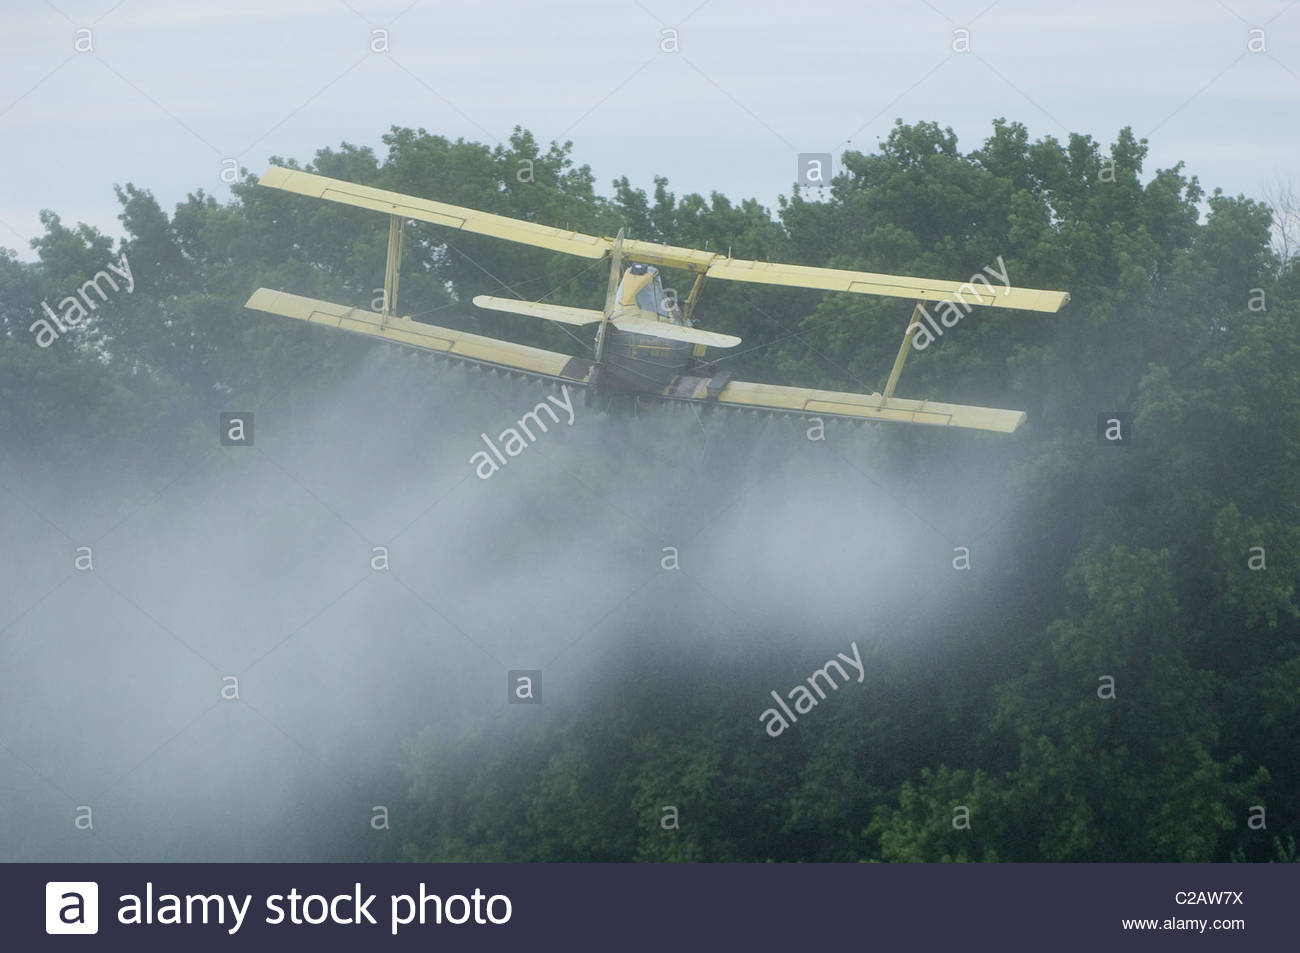 A crop duster airplane sprays pesticide over potato field. - Stock Image